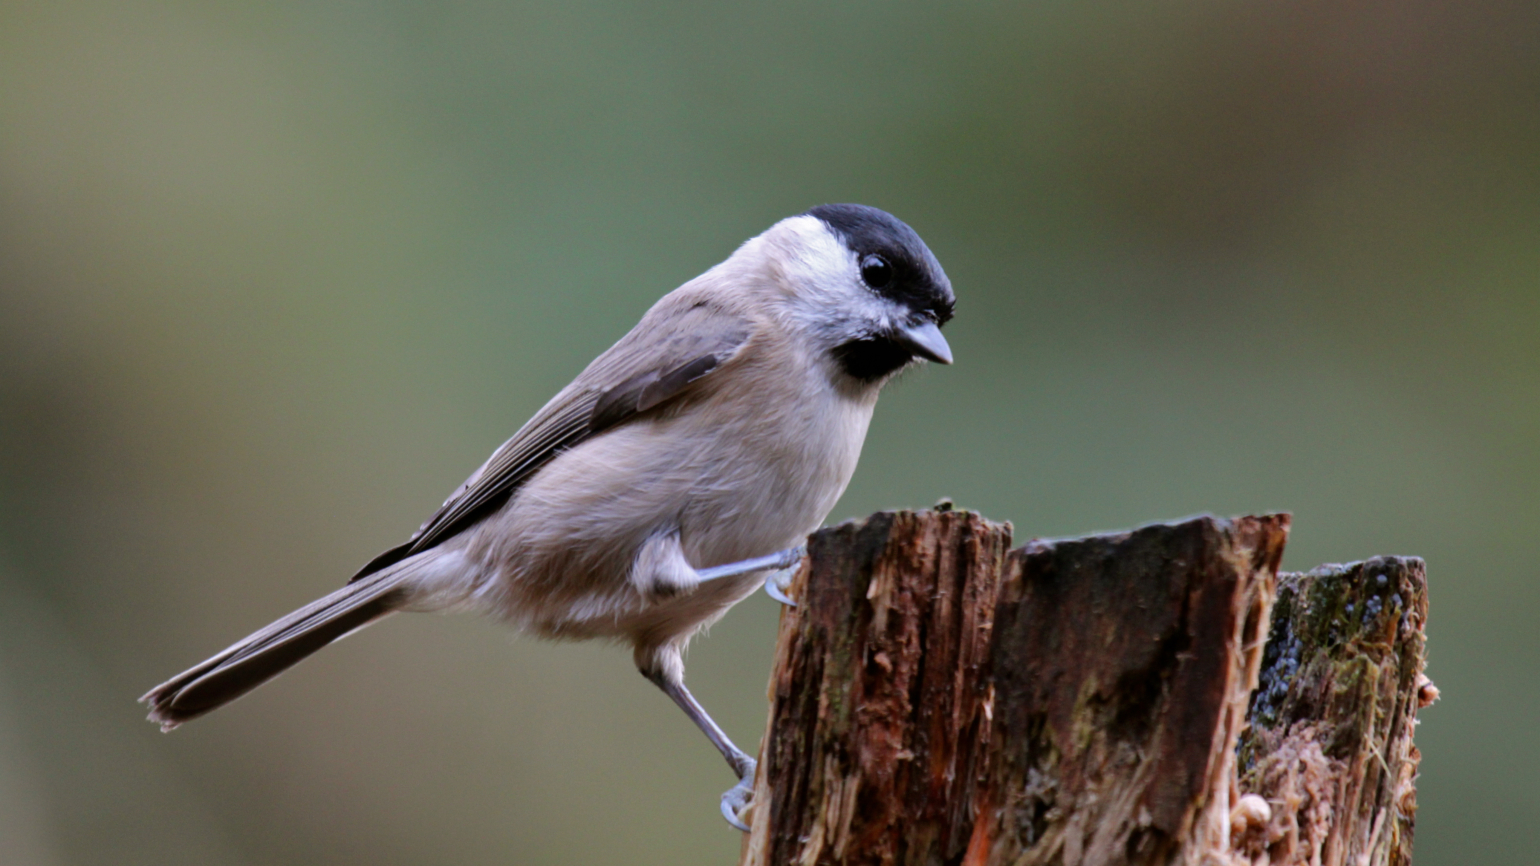 A Marsh tit in the Loder Valley Nature Reserve